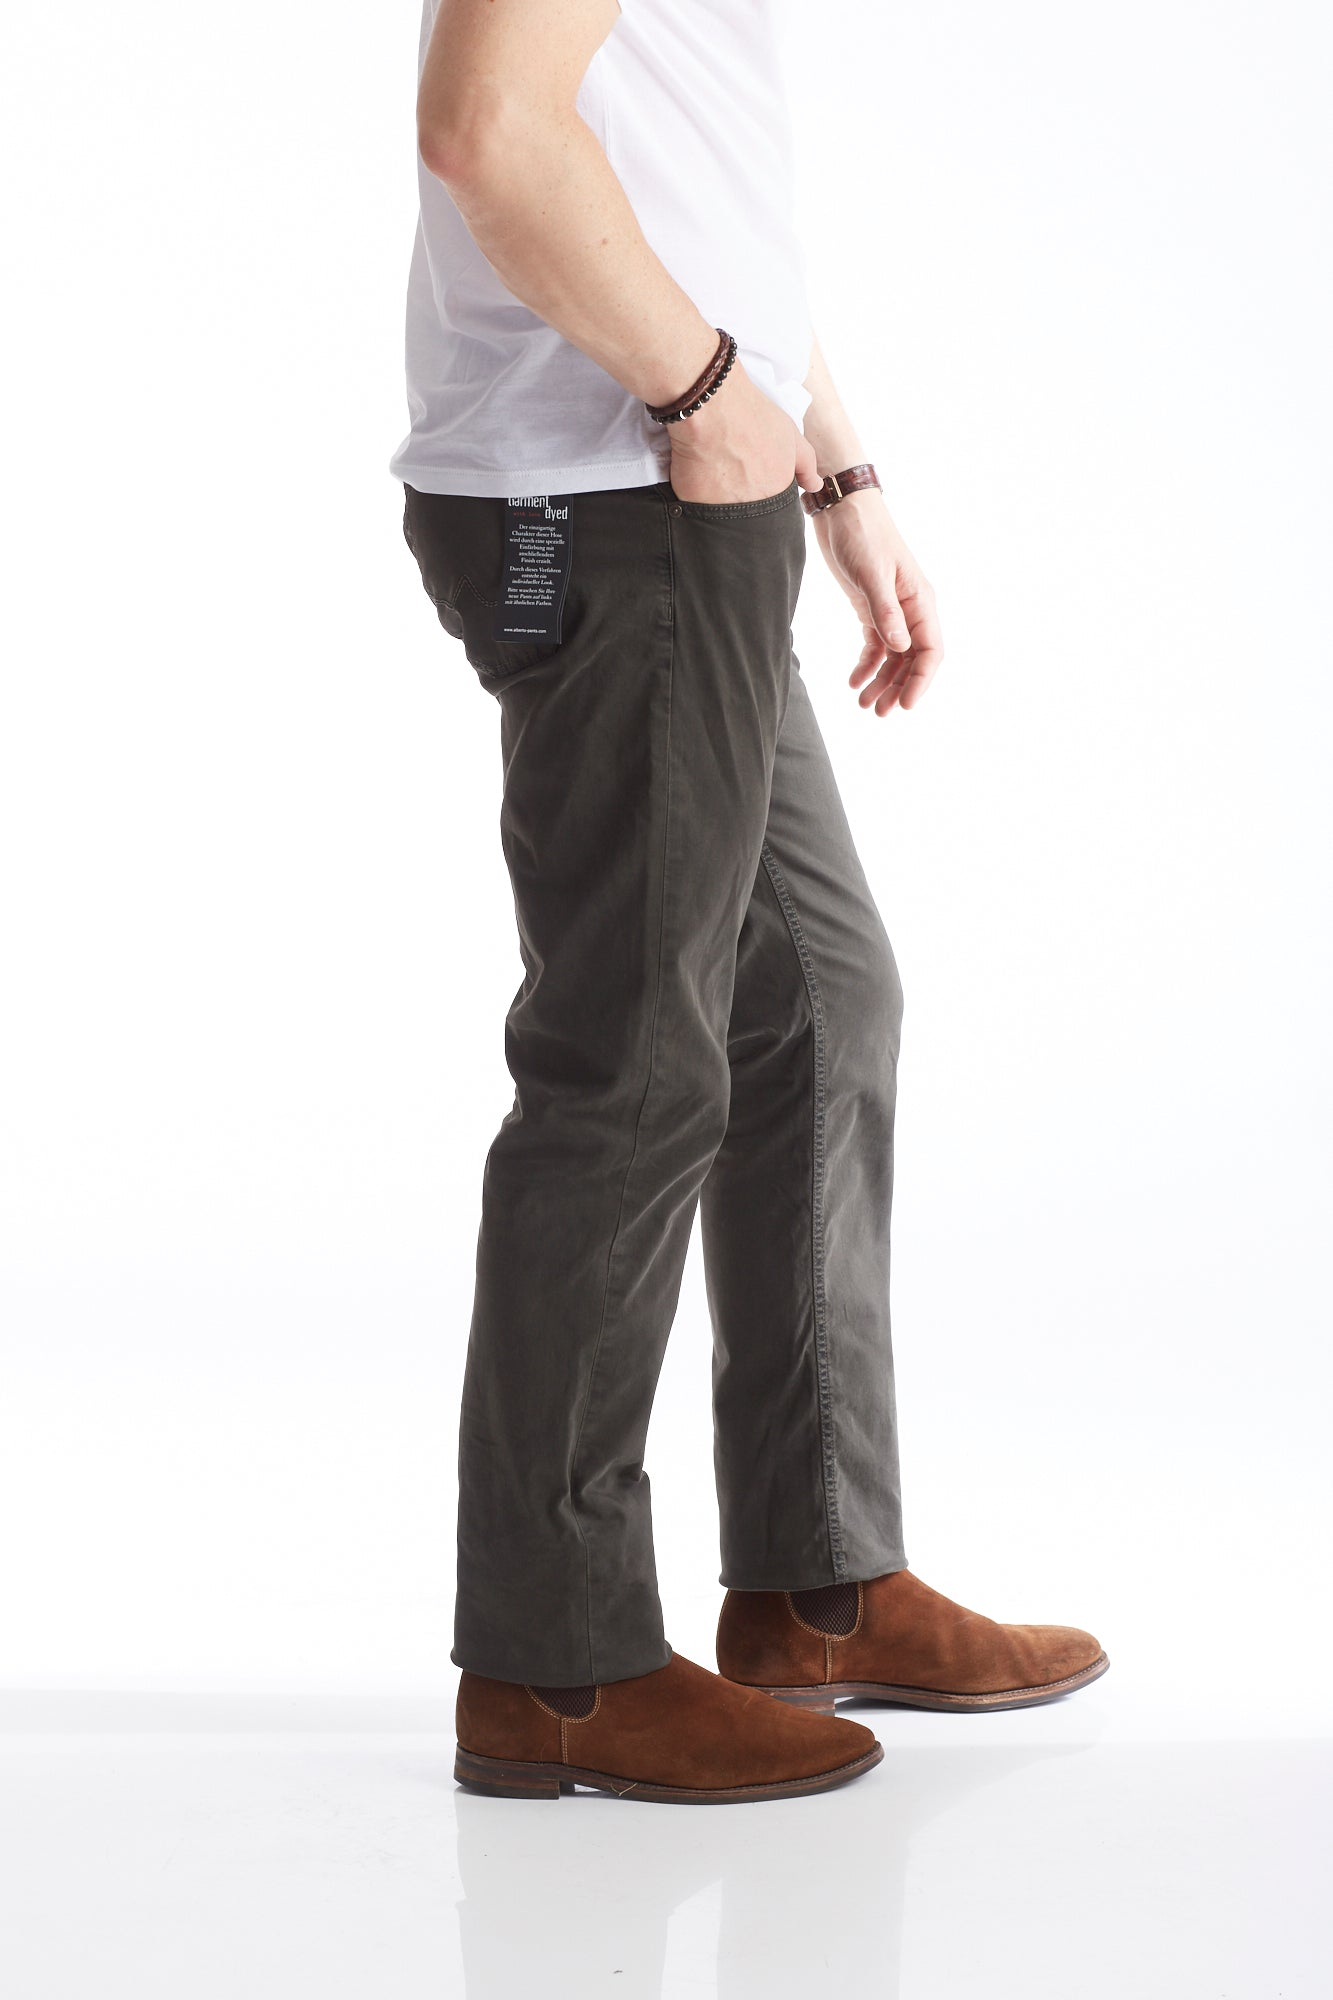 Alberto Moss Green 5-Pocket Pants Side